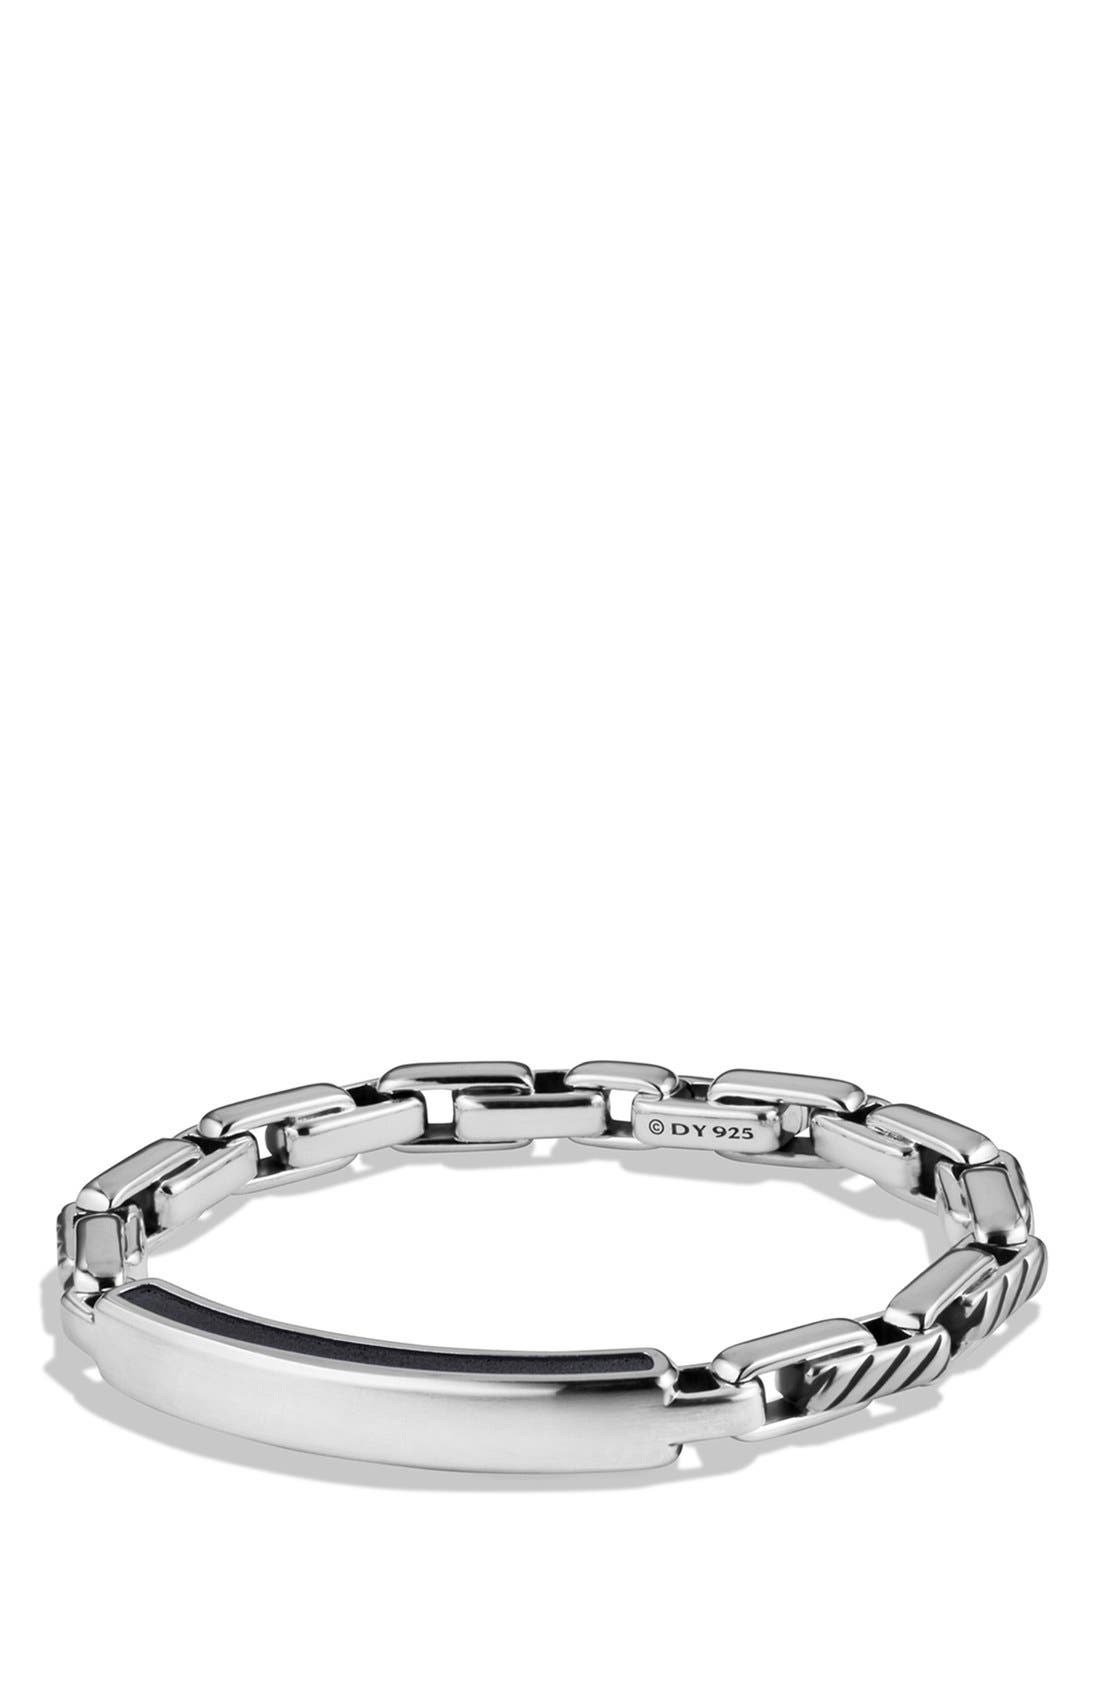 Main Image - David Yurman 'Modern Cable' ID Bracelet